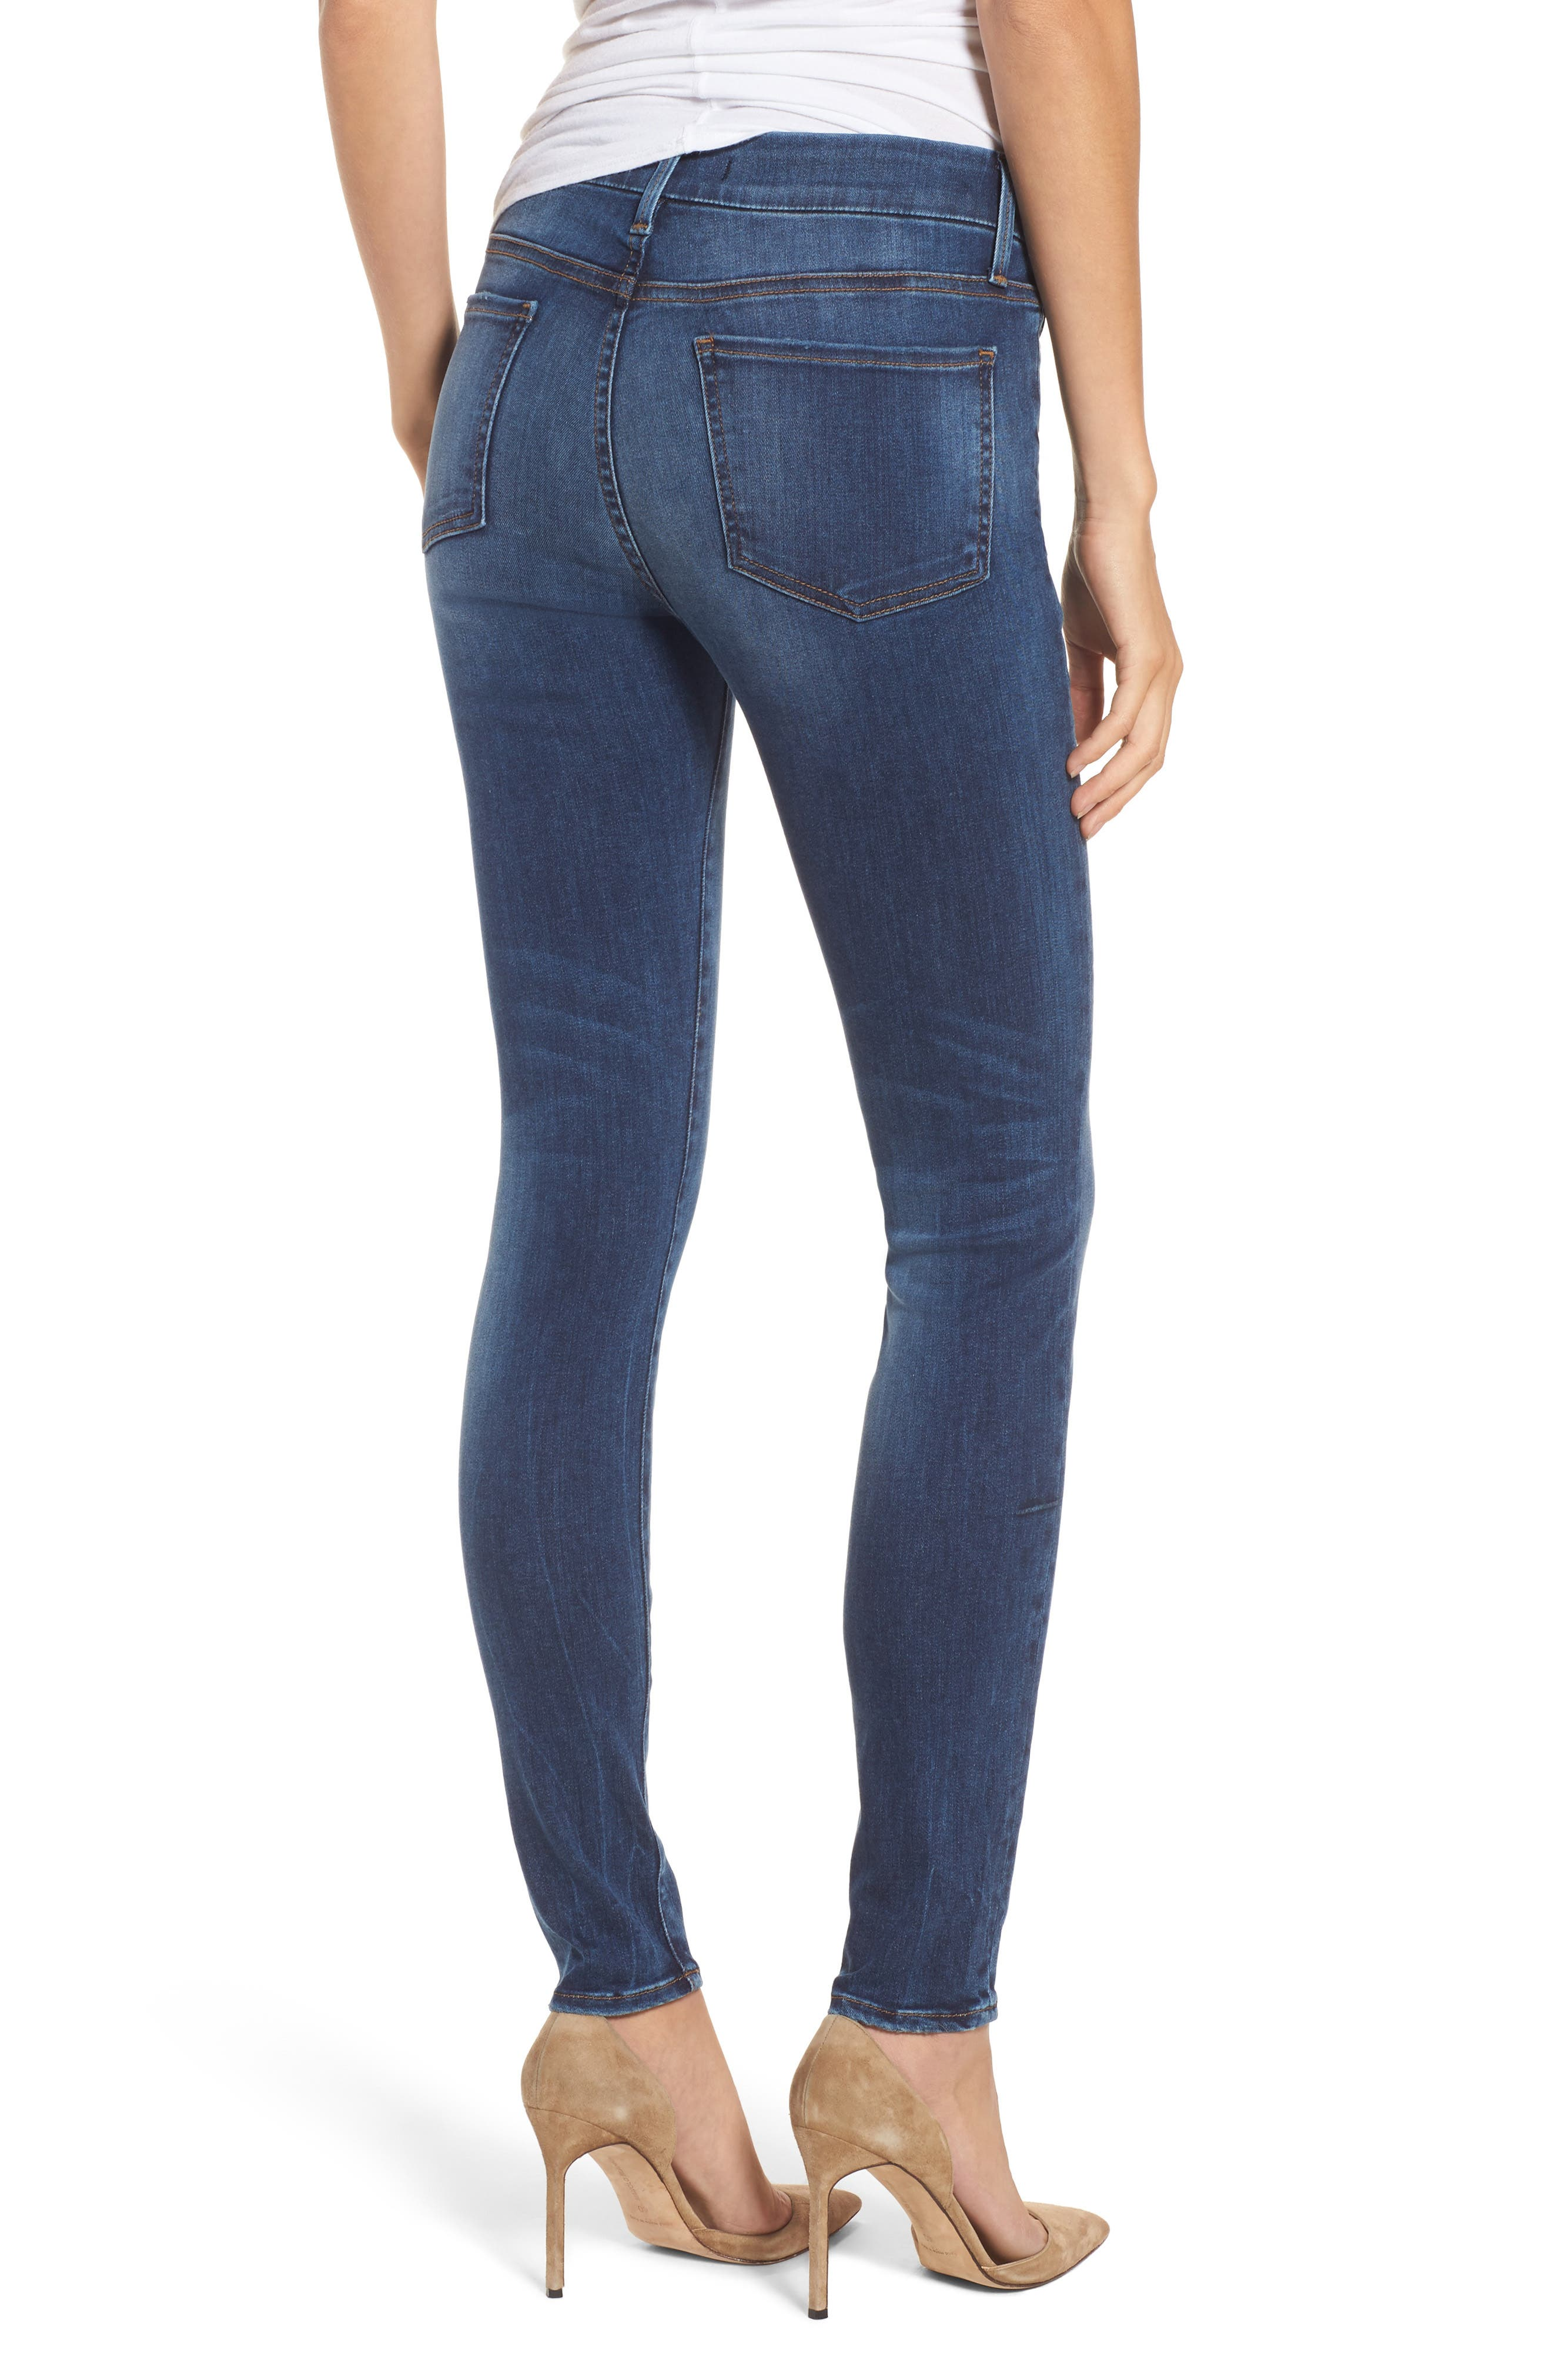 Belvedere Skinny Jeans,                             Alternate thumbnail 2, color,                             400